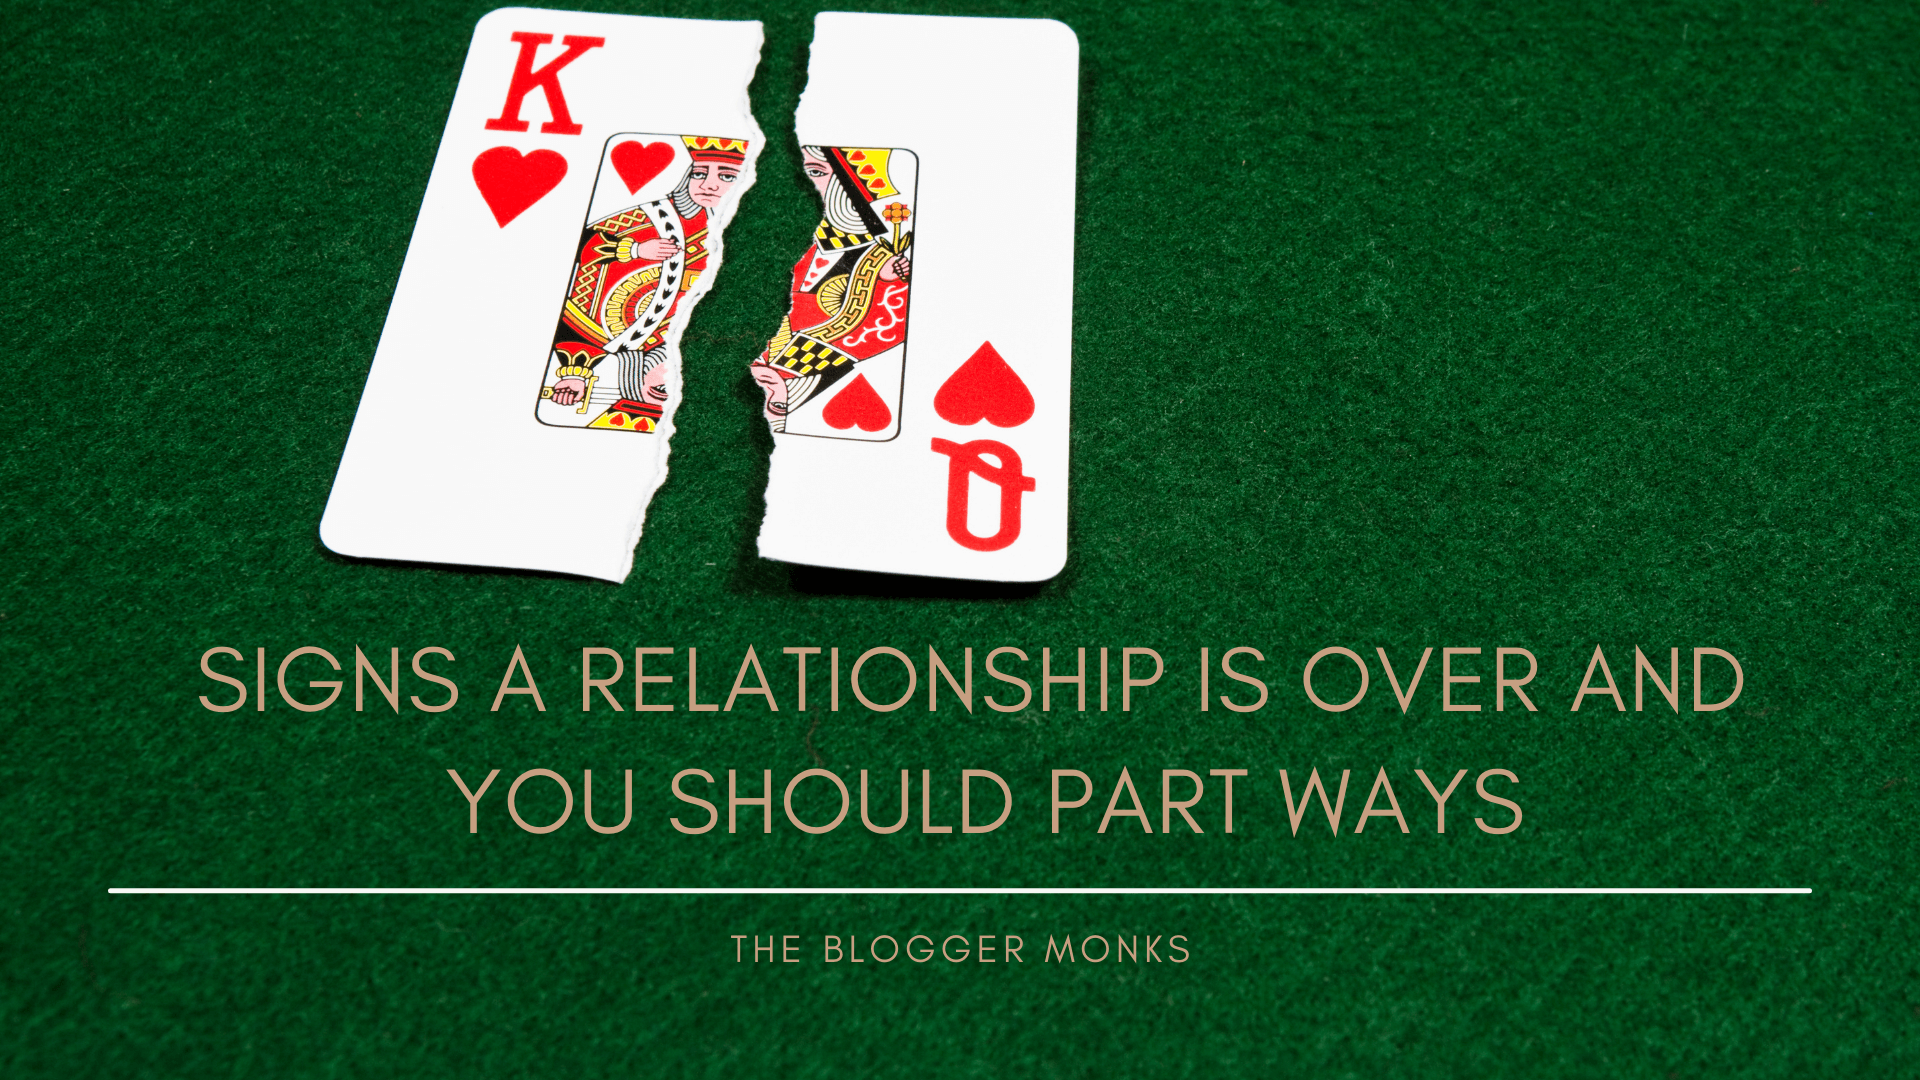 Signs a relationship is over and you should part ways!